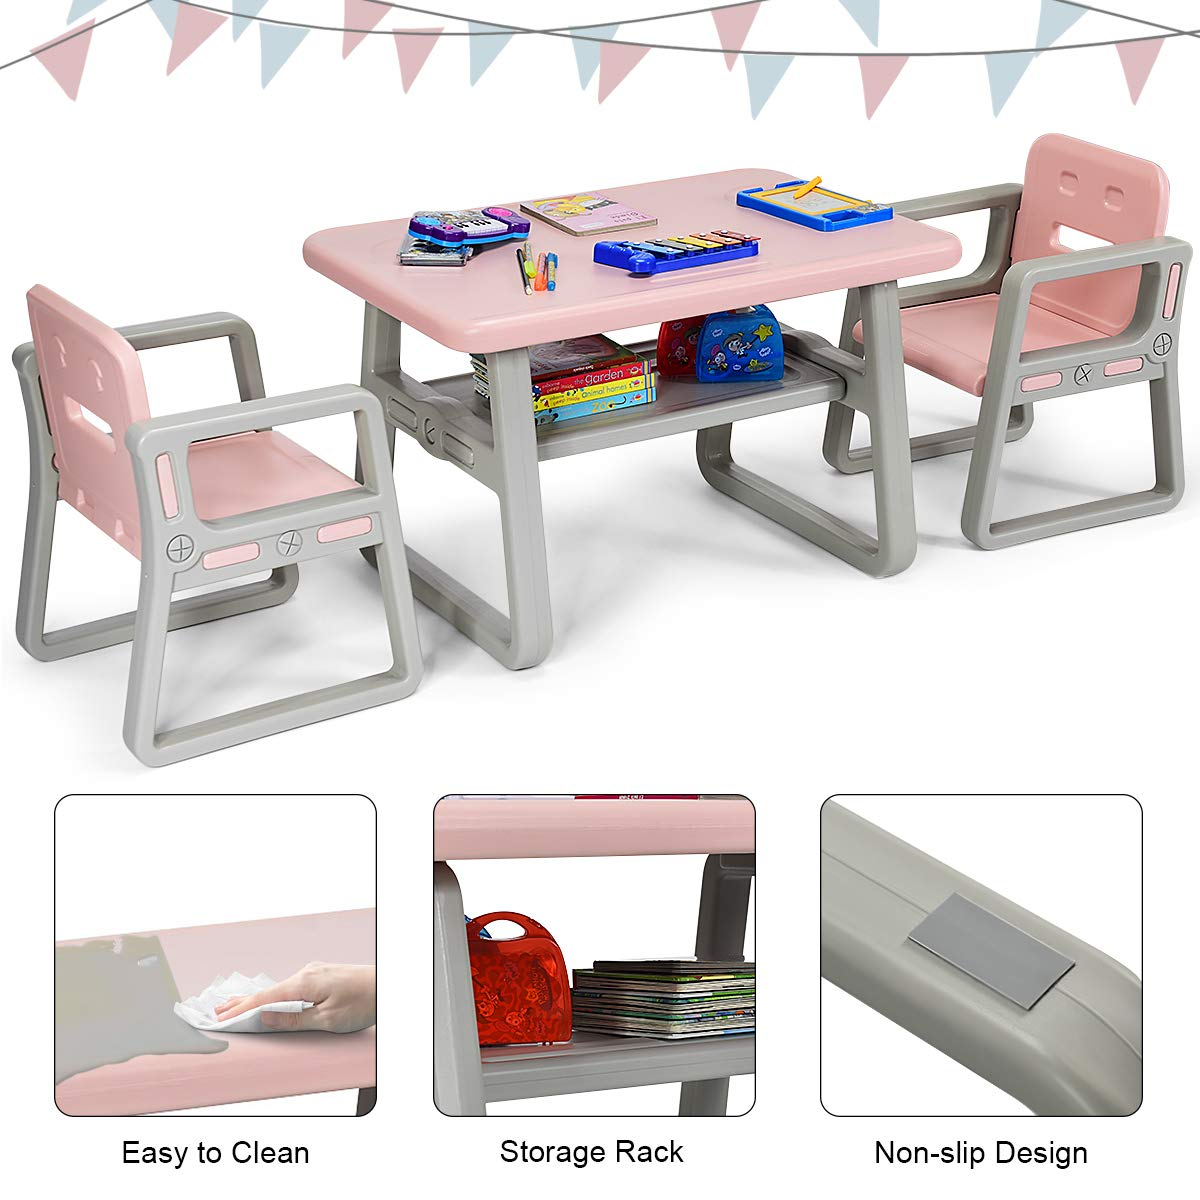 Costzon 3 Piece Kids Table and 2 Chairs Set, Learning Activity Play Table, Baby Dining Table, Children Desk Chair for 1-3 Years, Kids Furniture Set (Pink) by Costzon (Image #4)